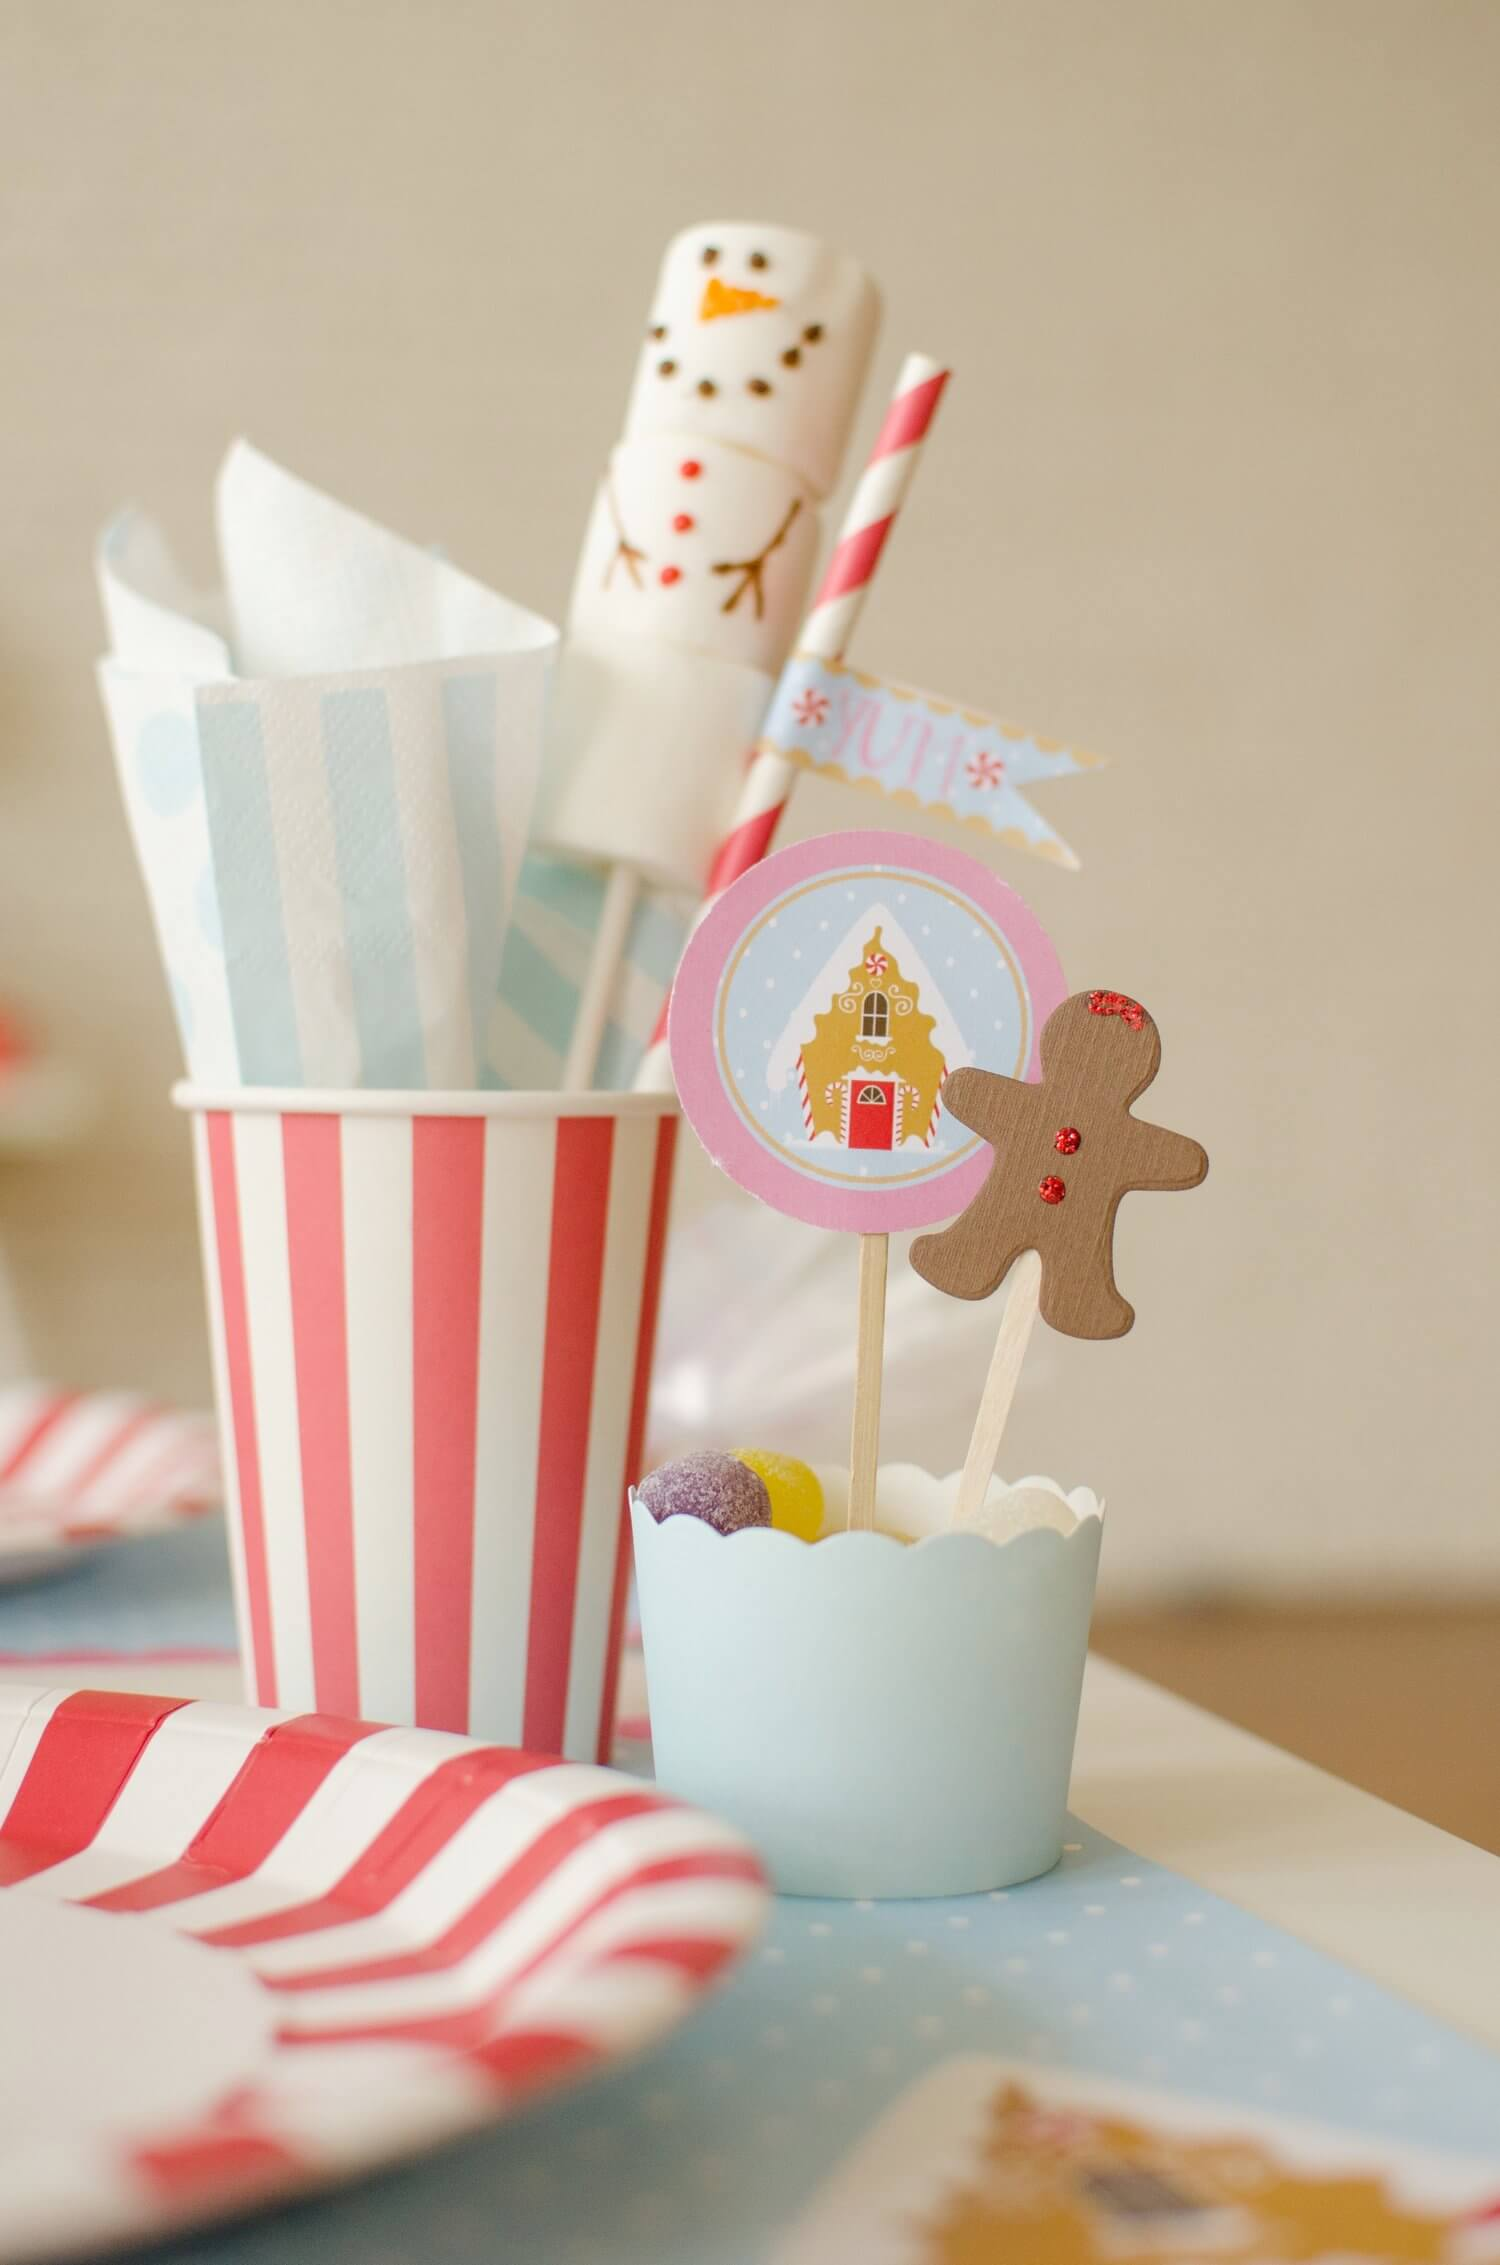 Dress up your holiday party with printable cupcake toppers and candy cane partyware. See more from this Cookies for Santa party on www.minteventdesign.com - styled by Austin, Texas based party planner Mint Event Design. #holidayparty #holidaypartyideas #christmaspartyideas #partysupplies #partyprintables #cupcaketoppers